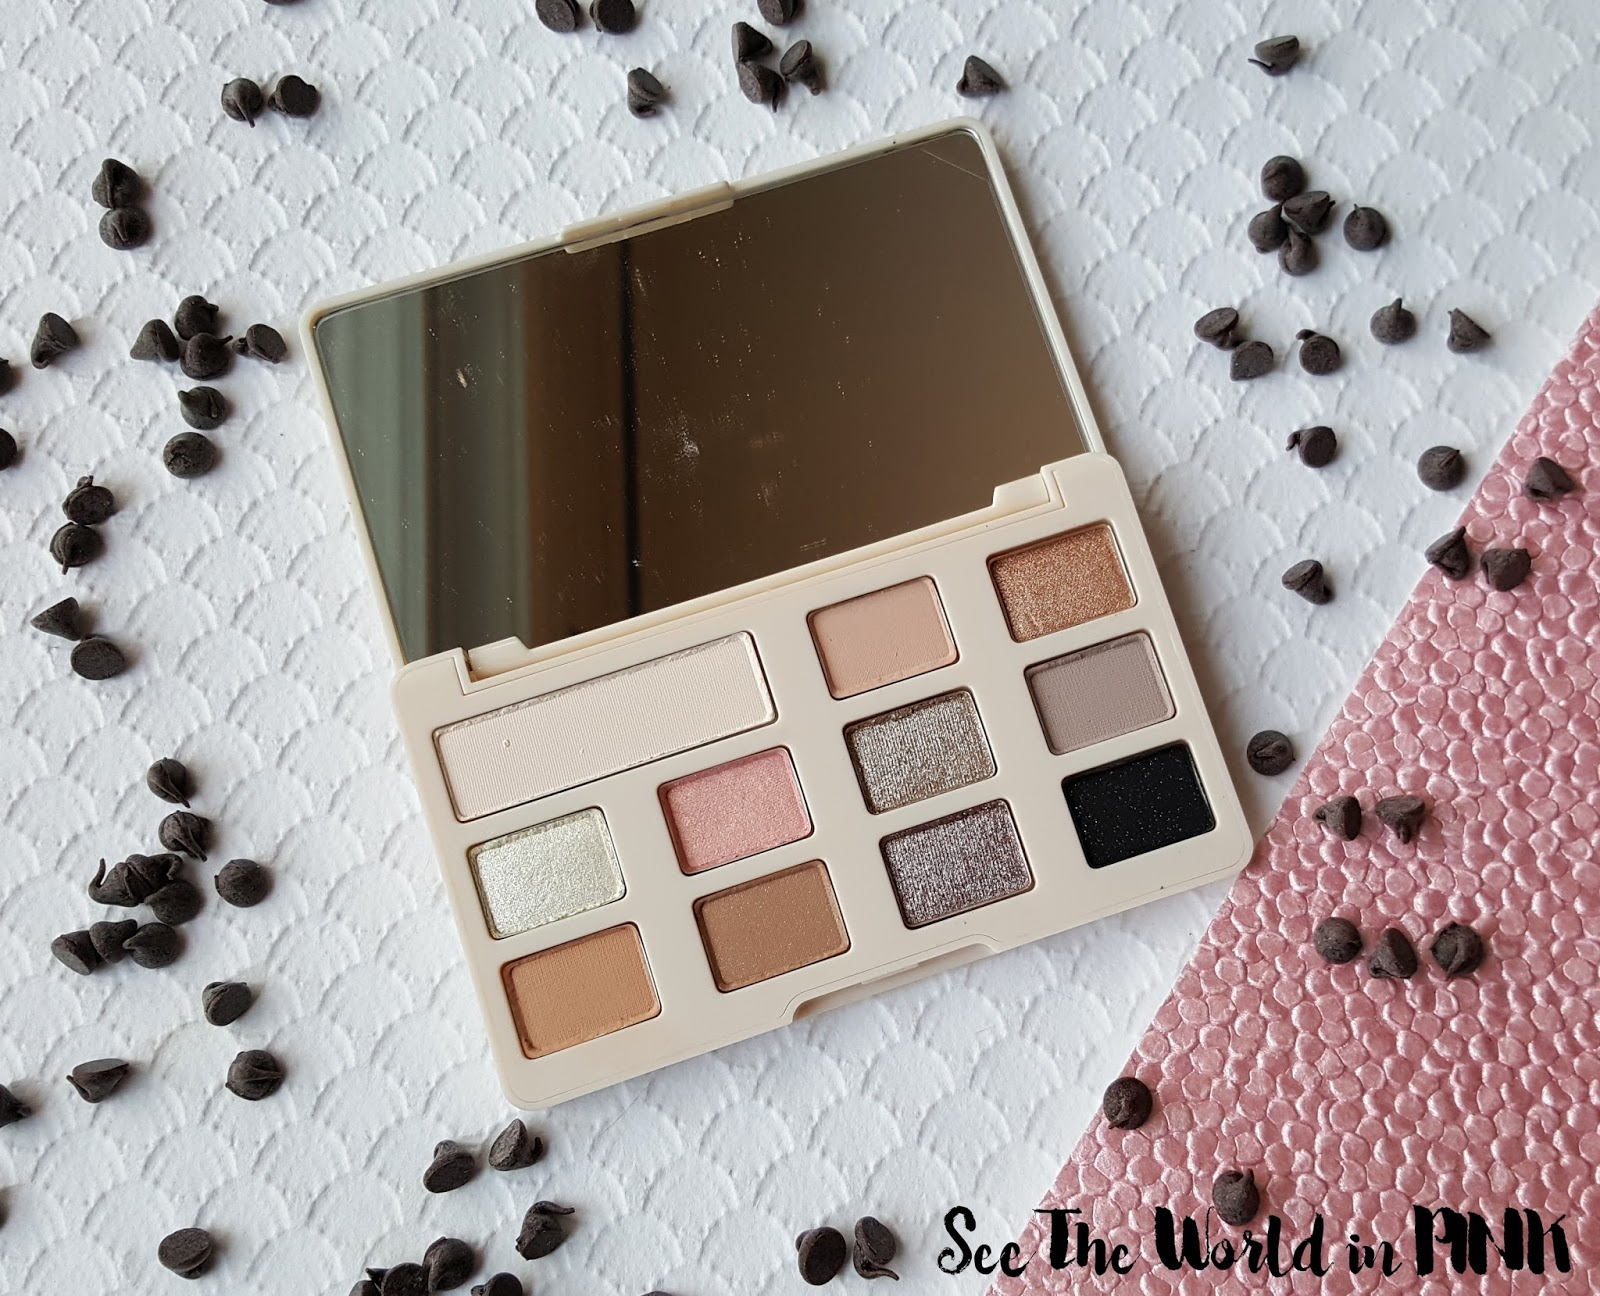 Too Faced White Chocolate Chip Palette - Swatches and Review